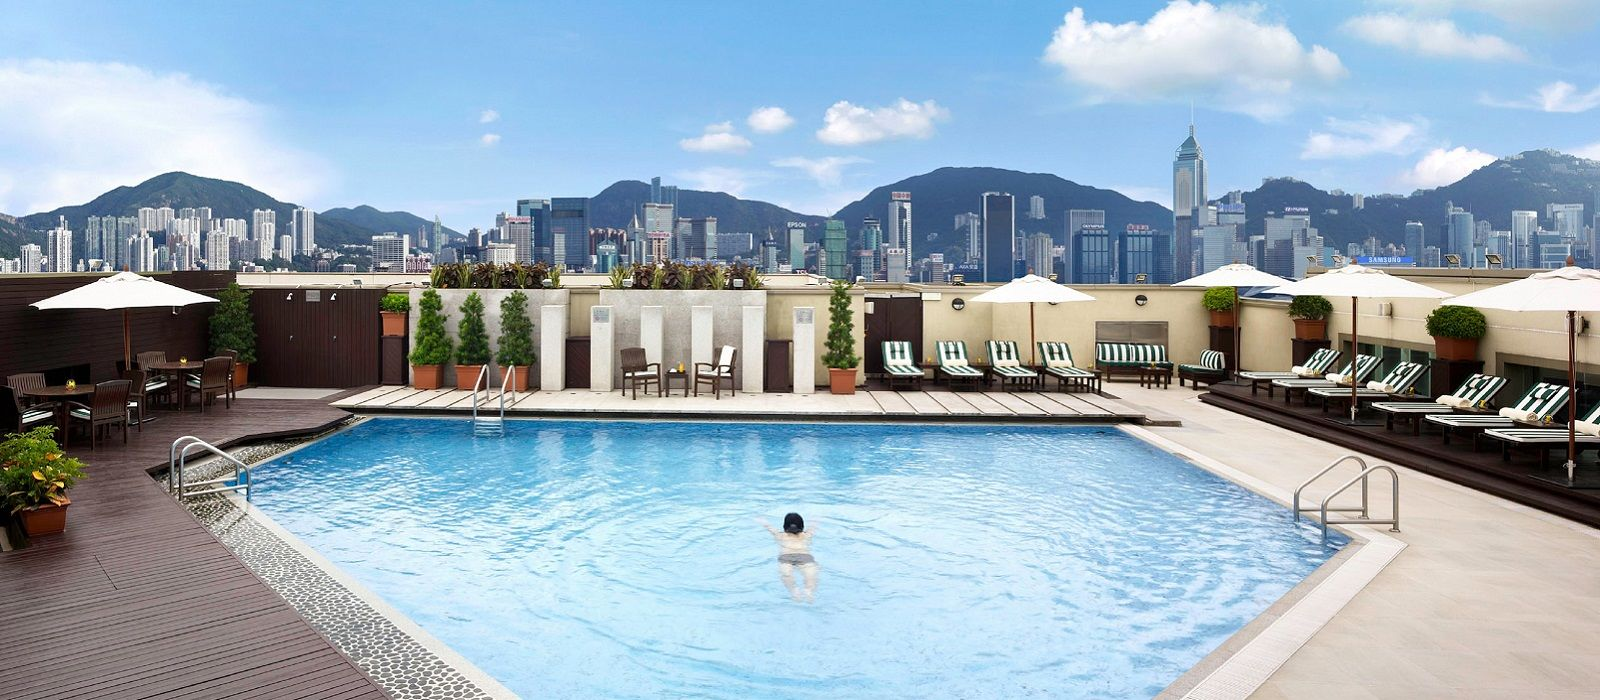 Hotel Intercontinental Grand Stanford Hong Kong Hong Kong